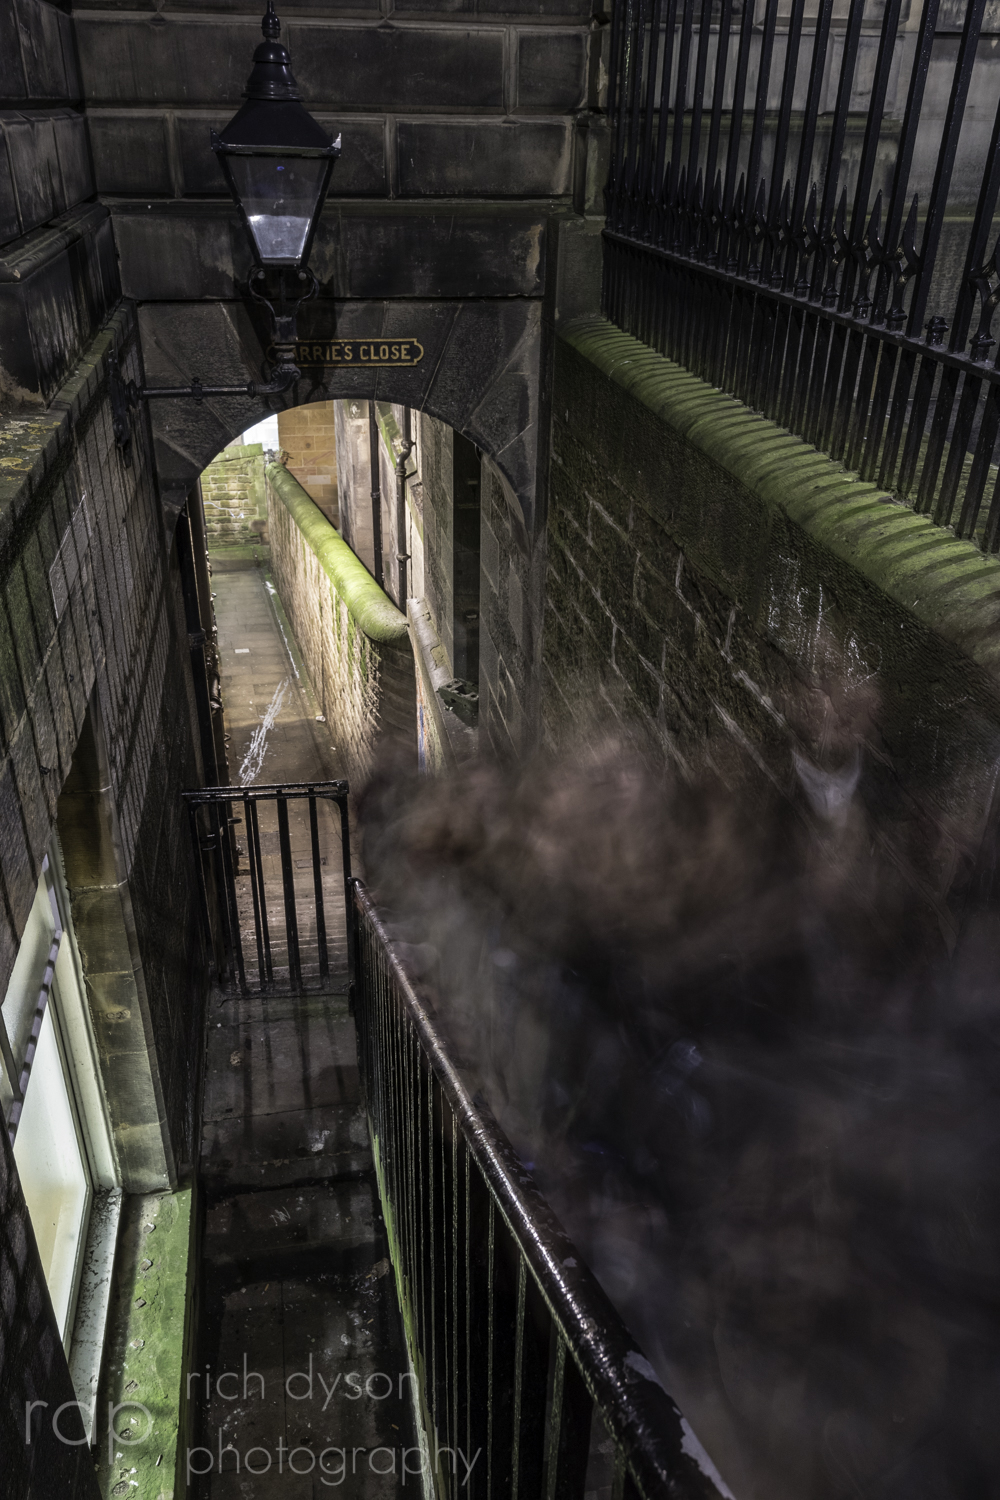 Ghostly figures rise up Barrie's Close in Edinburgh